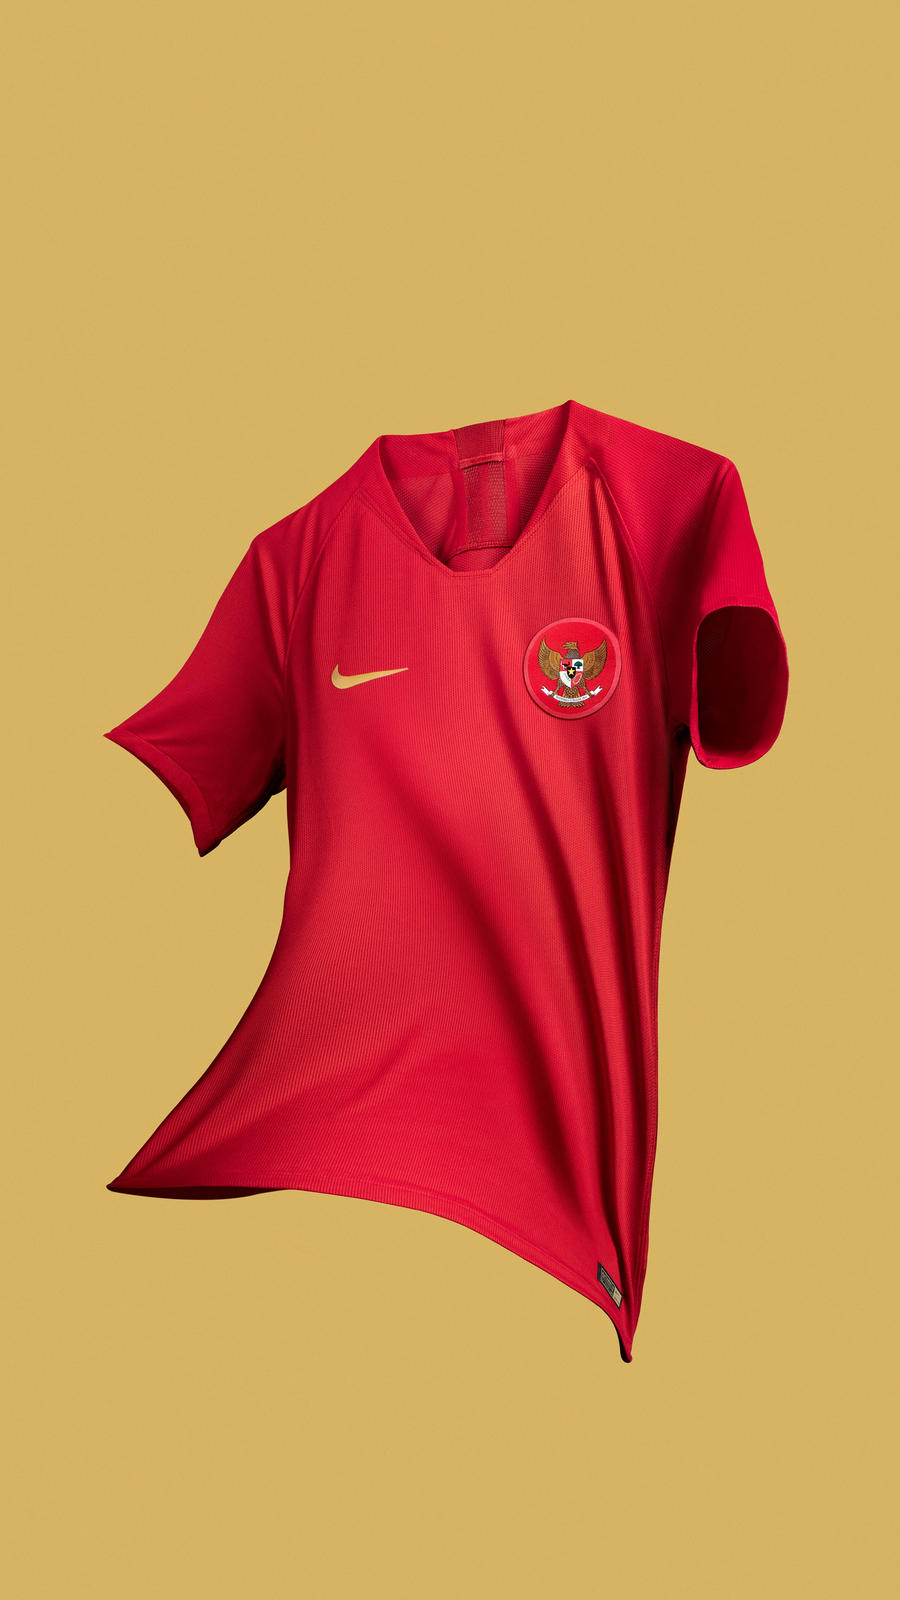 Indonesia's 2018 Kits Harness the Might of Over 17,500 Islands 0